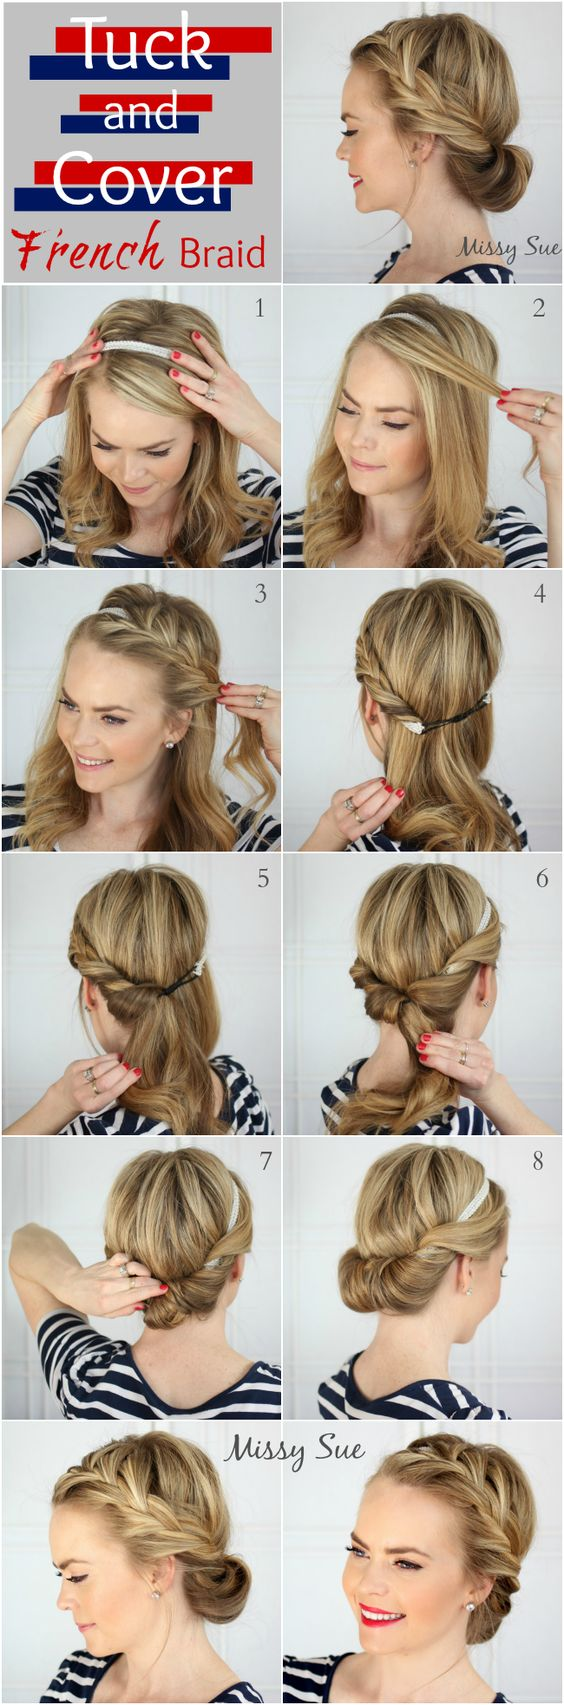 11 Easy Step by Step Updo Tutorials for Beginners - Hair Wrap Tutorials | Styles Weekly